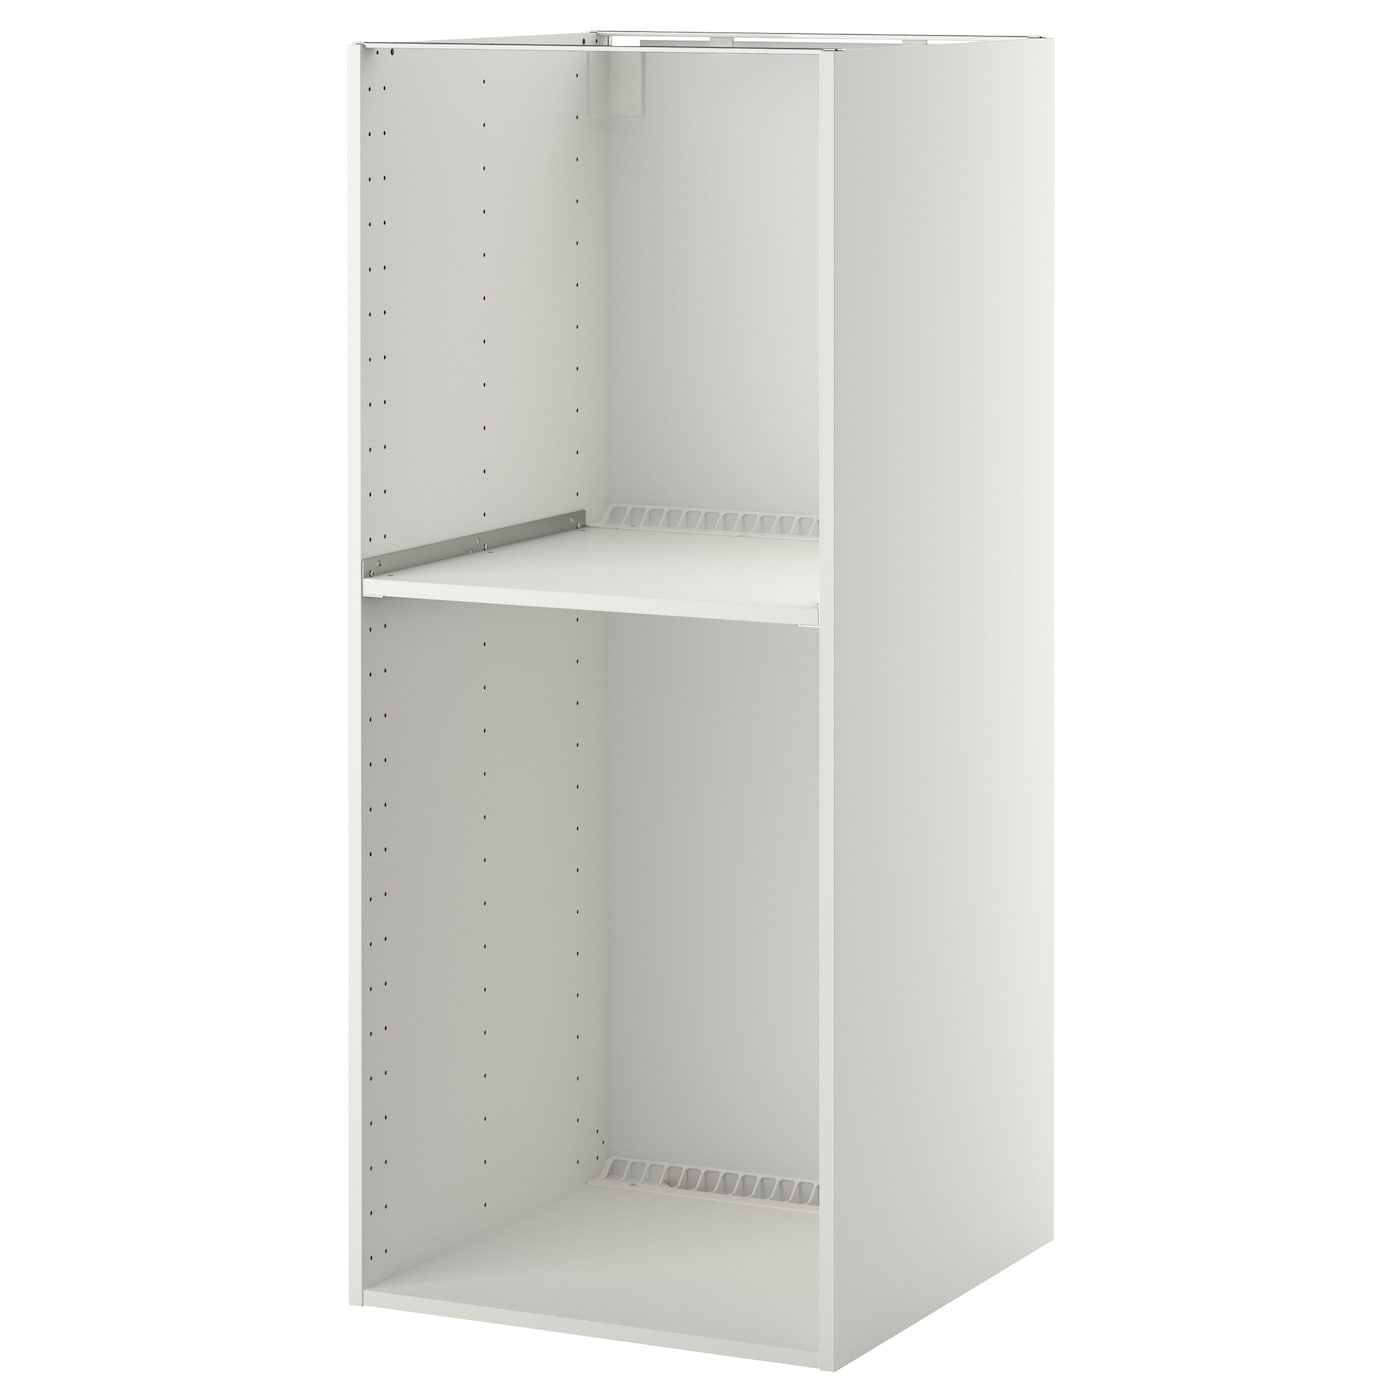 Metod high cabinet frame for fridge oven white 60x60x140 for Ikea fridge cabinet